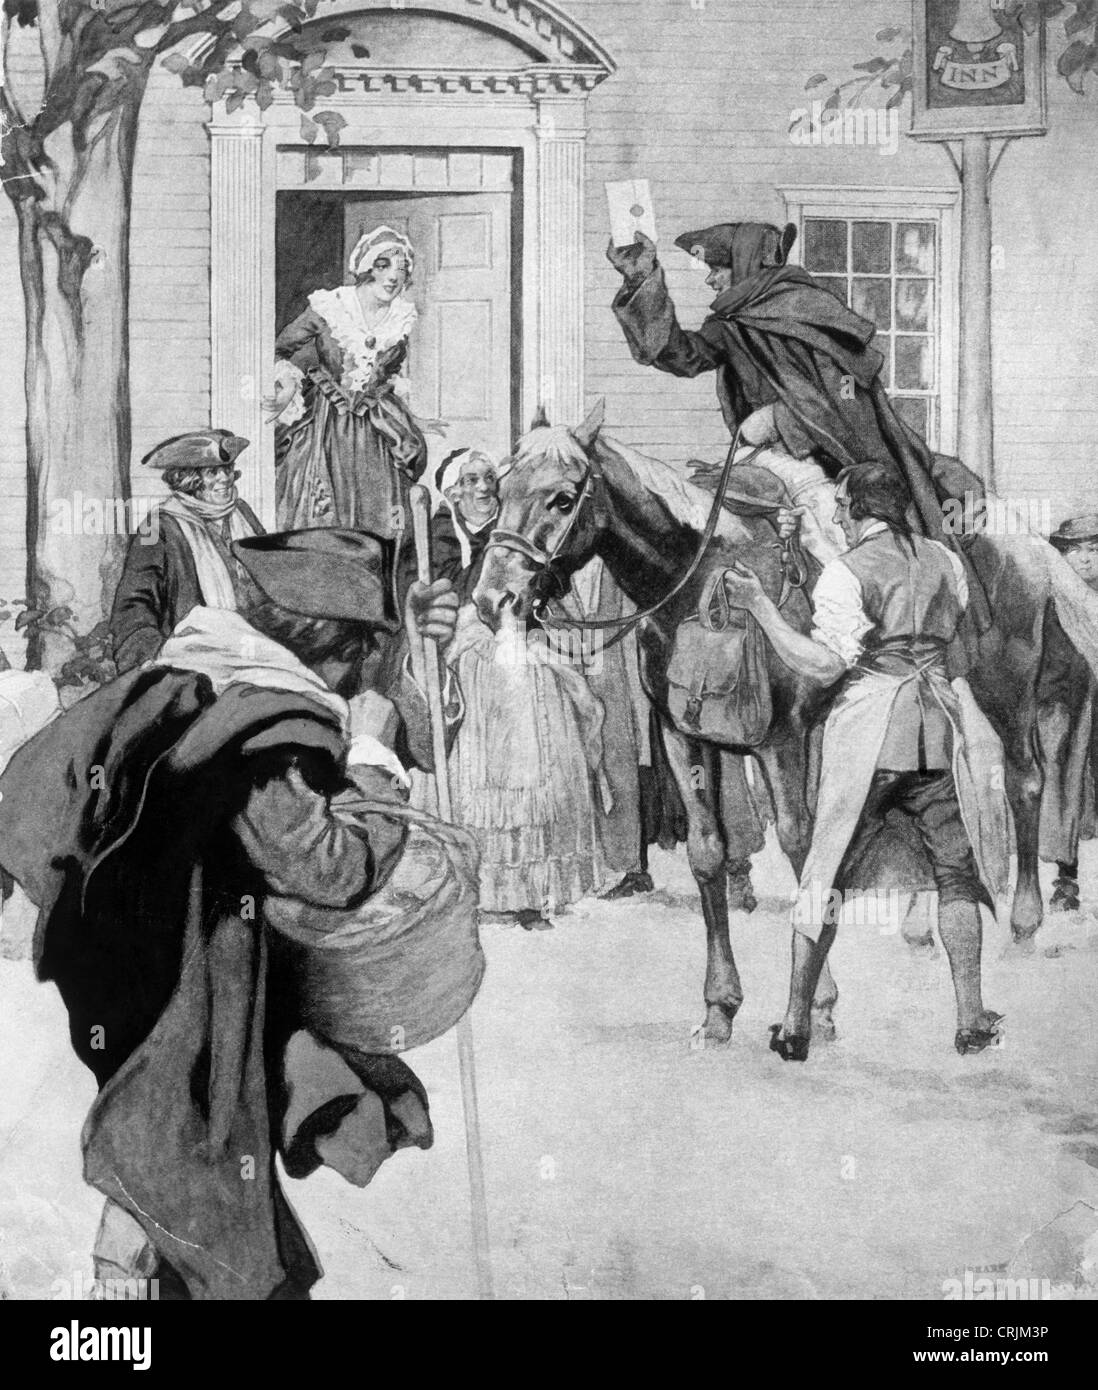 Illustration of colonial mail service - Stock Image